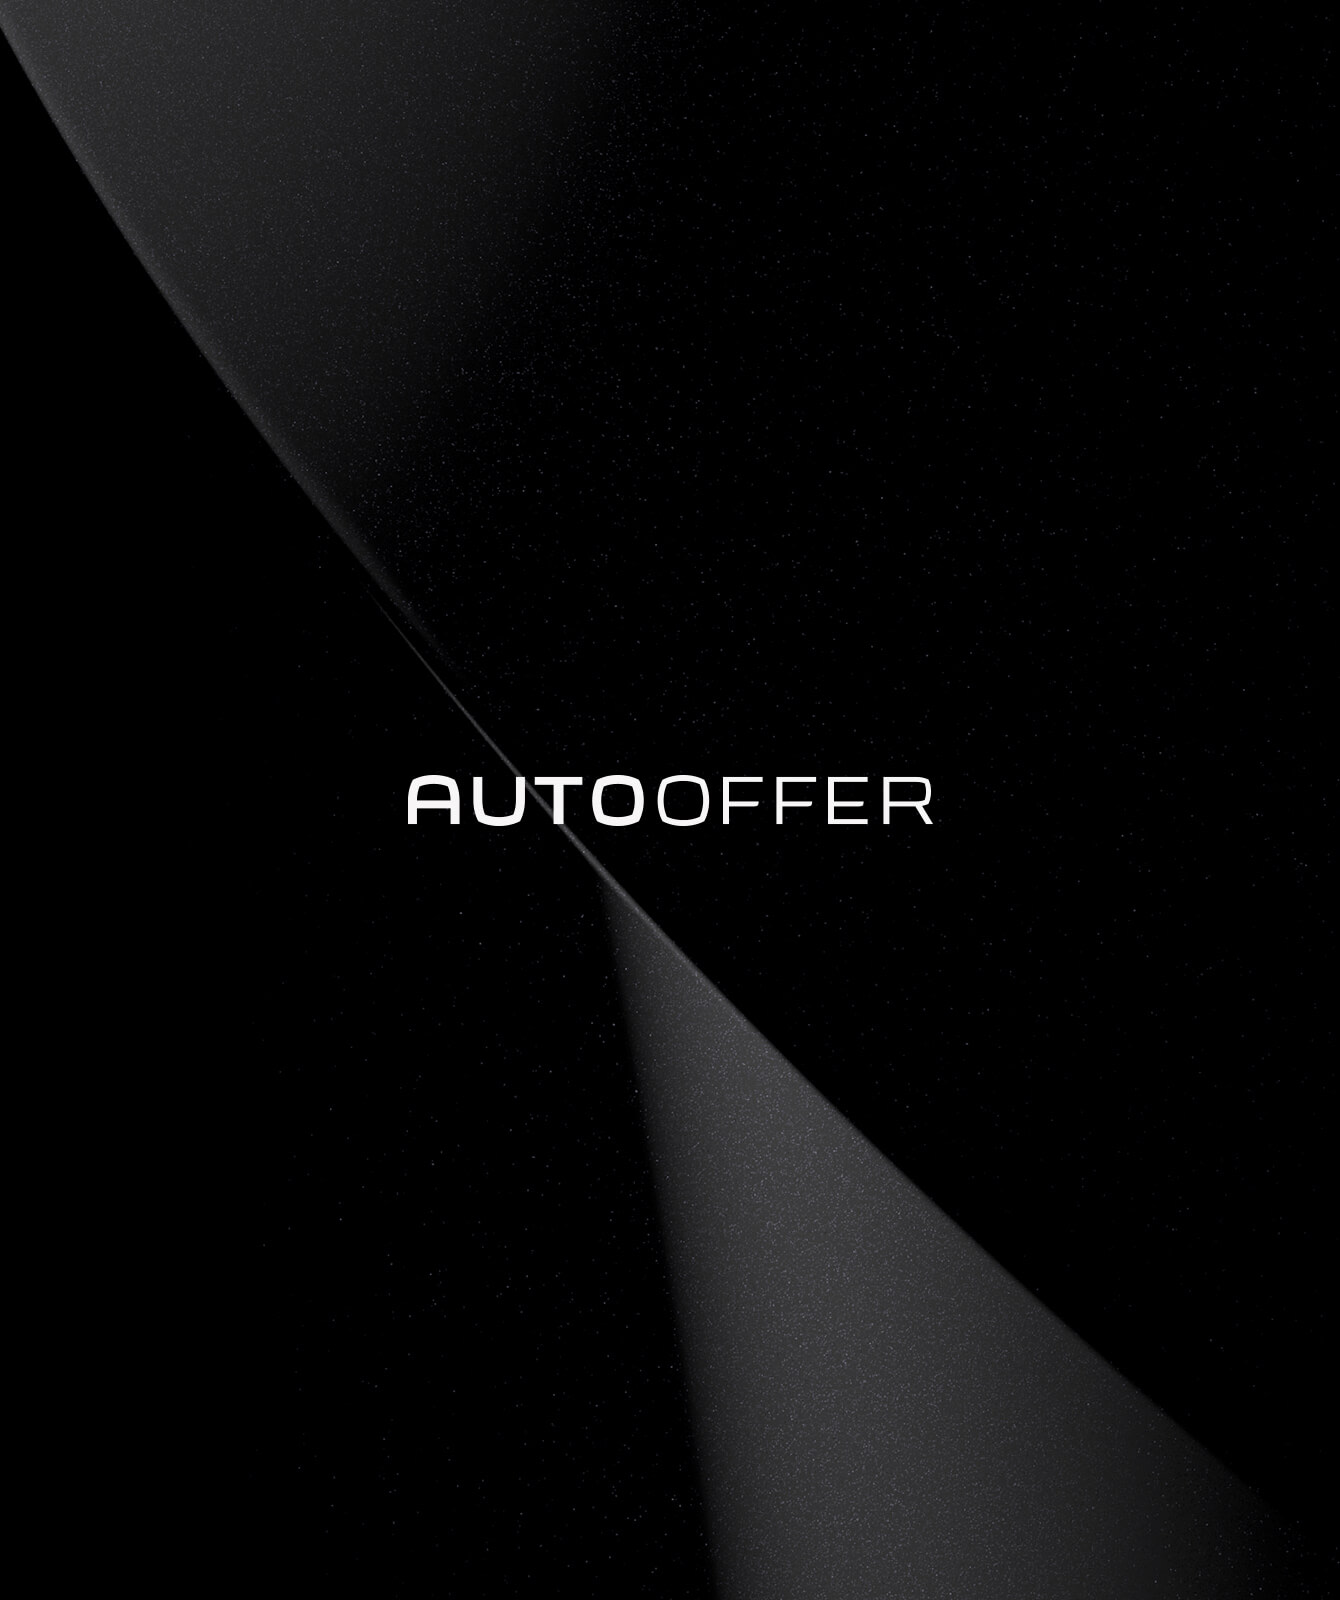 AutoOffer Visual Identity and Webdesign